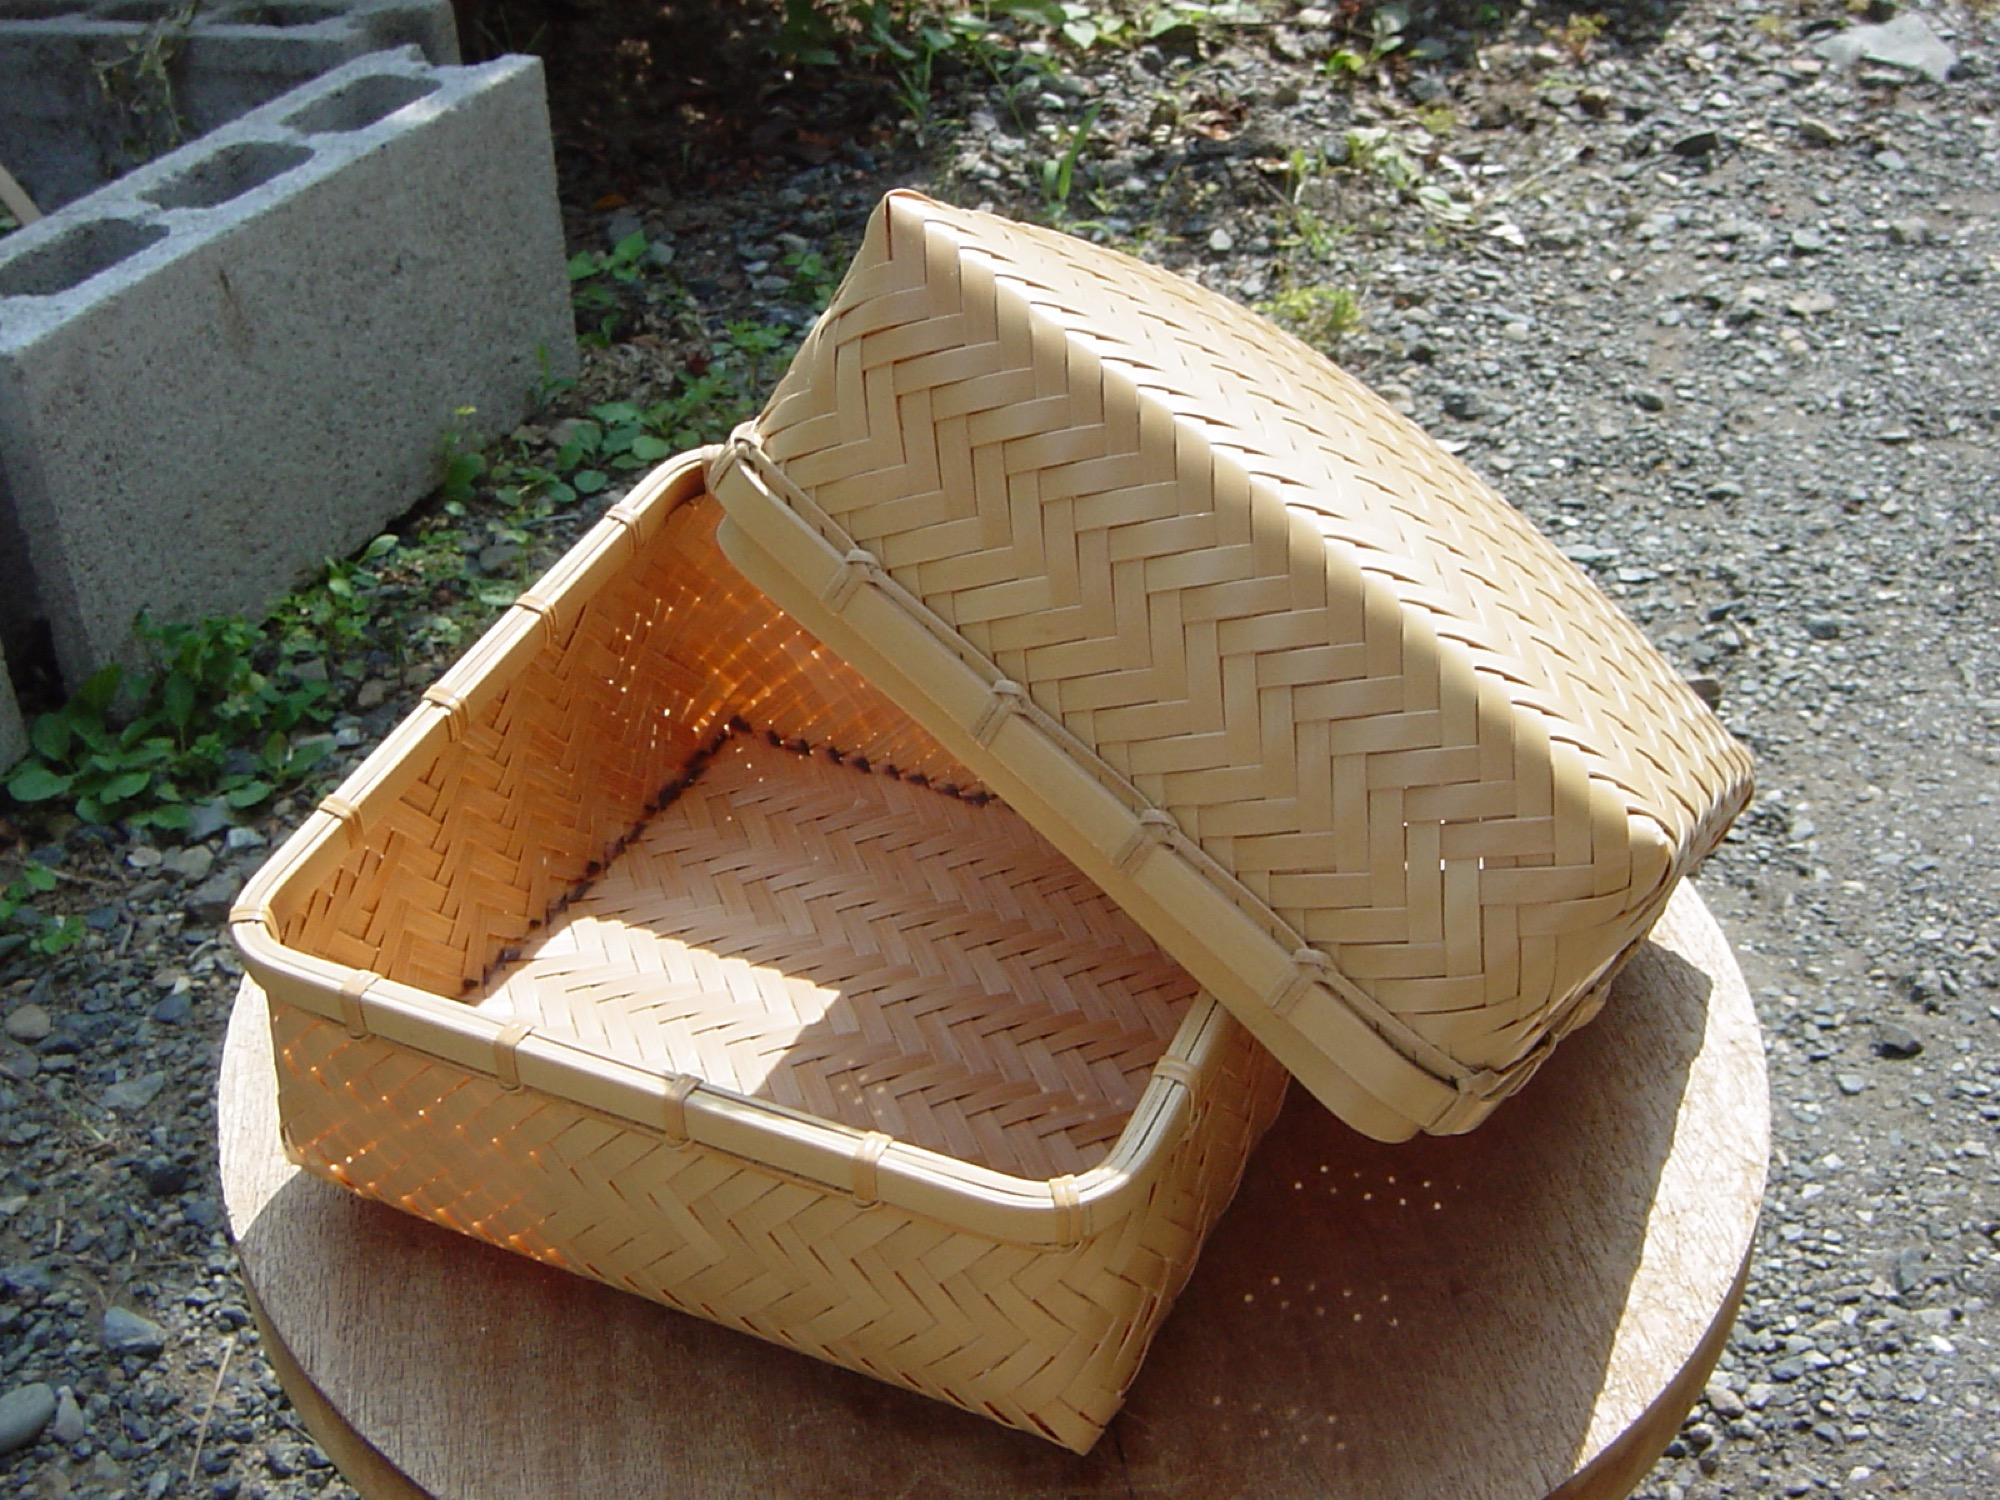 An empty Japanese basket